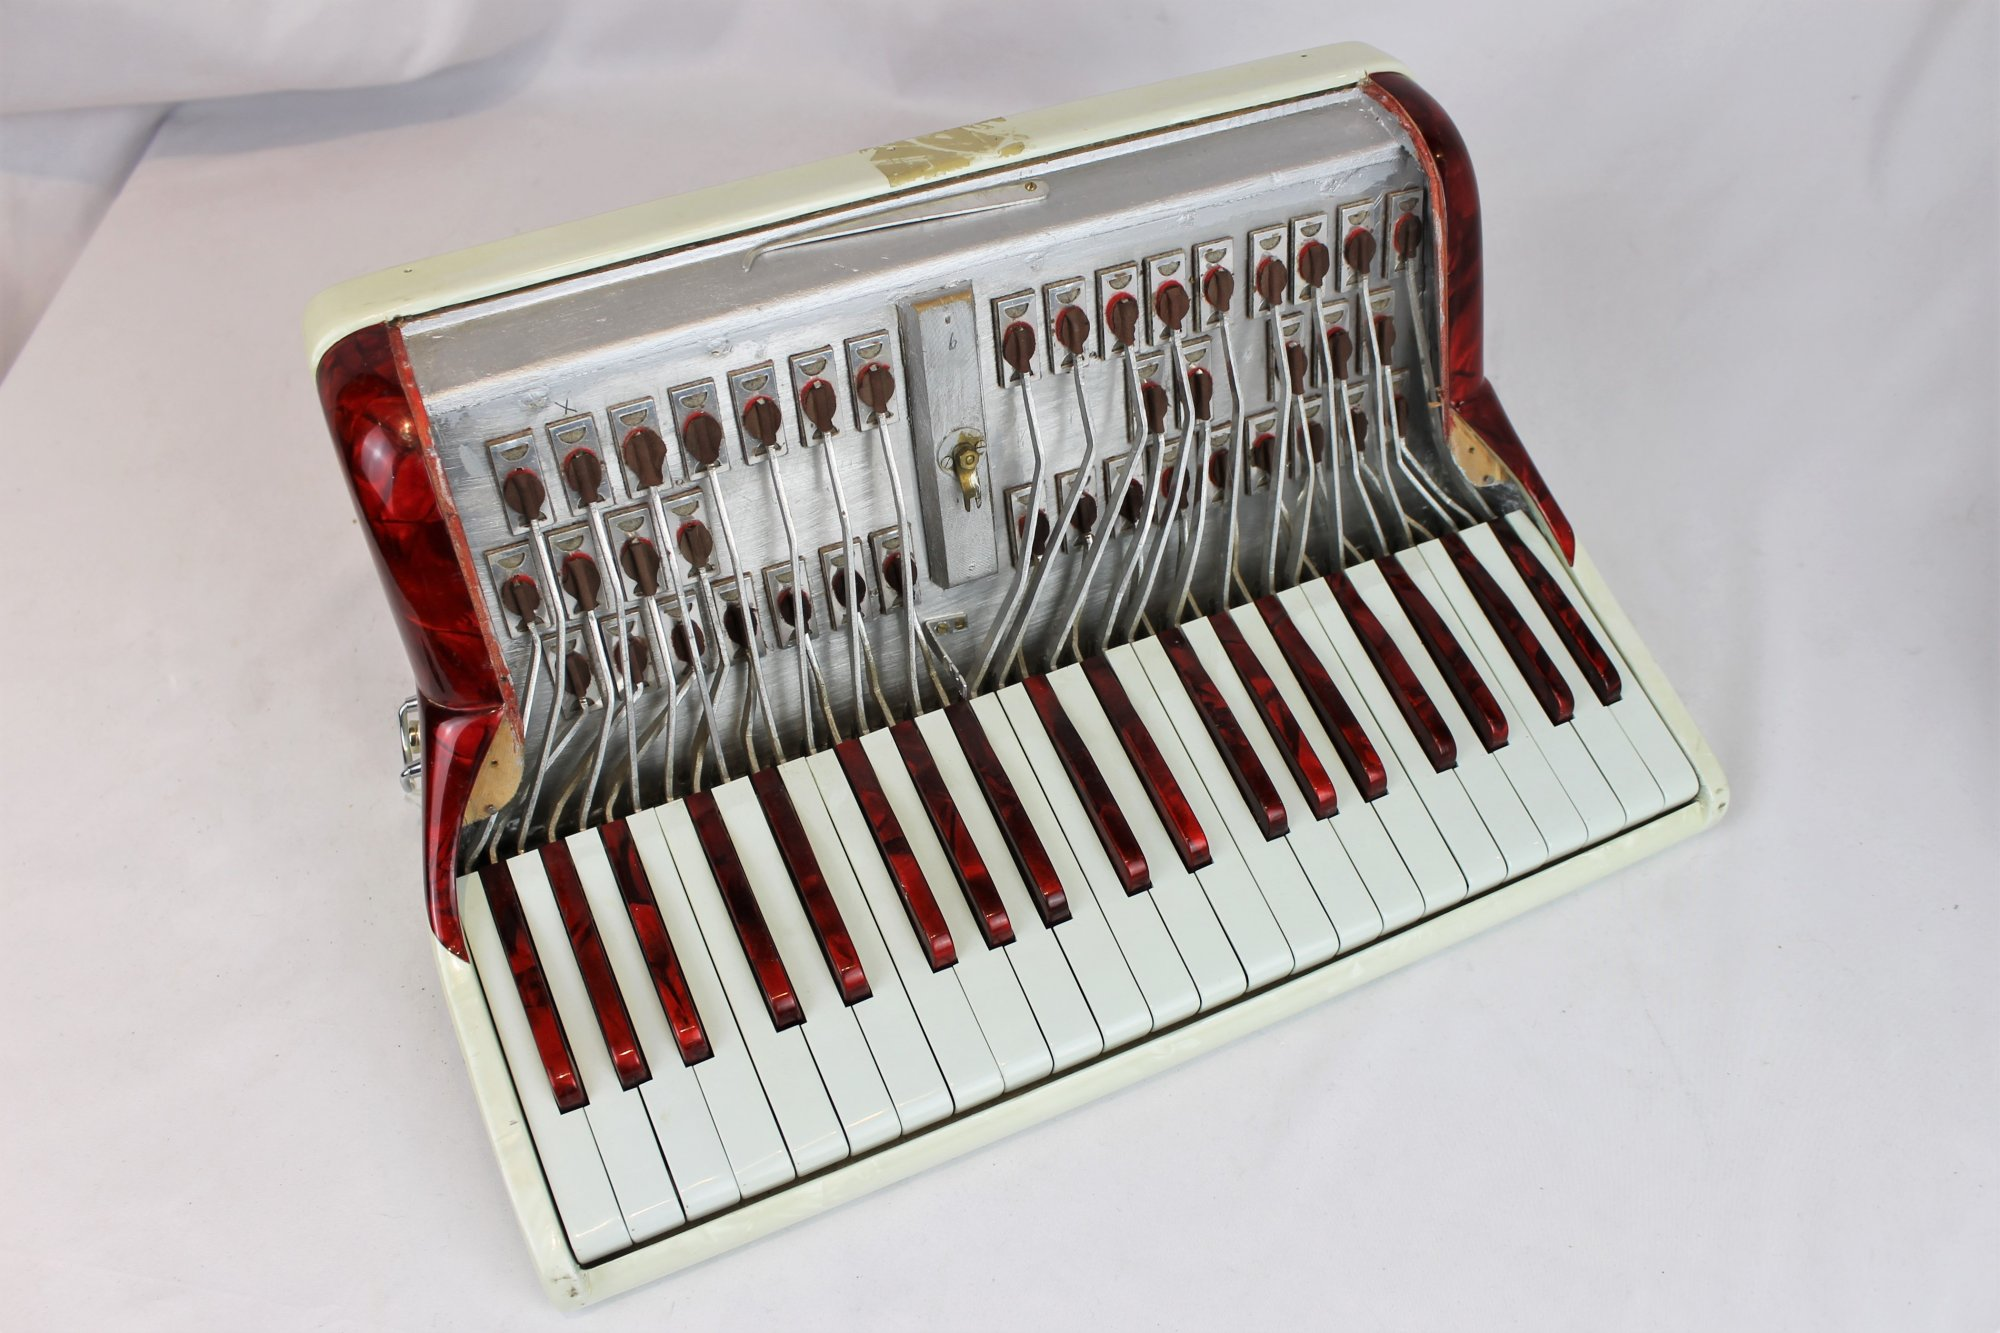 Cingolani Accordion Part - White and Red Treble Section 15.8 x 8.25 x 7